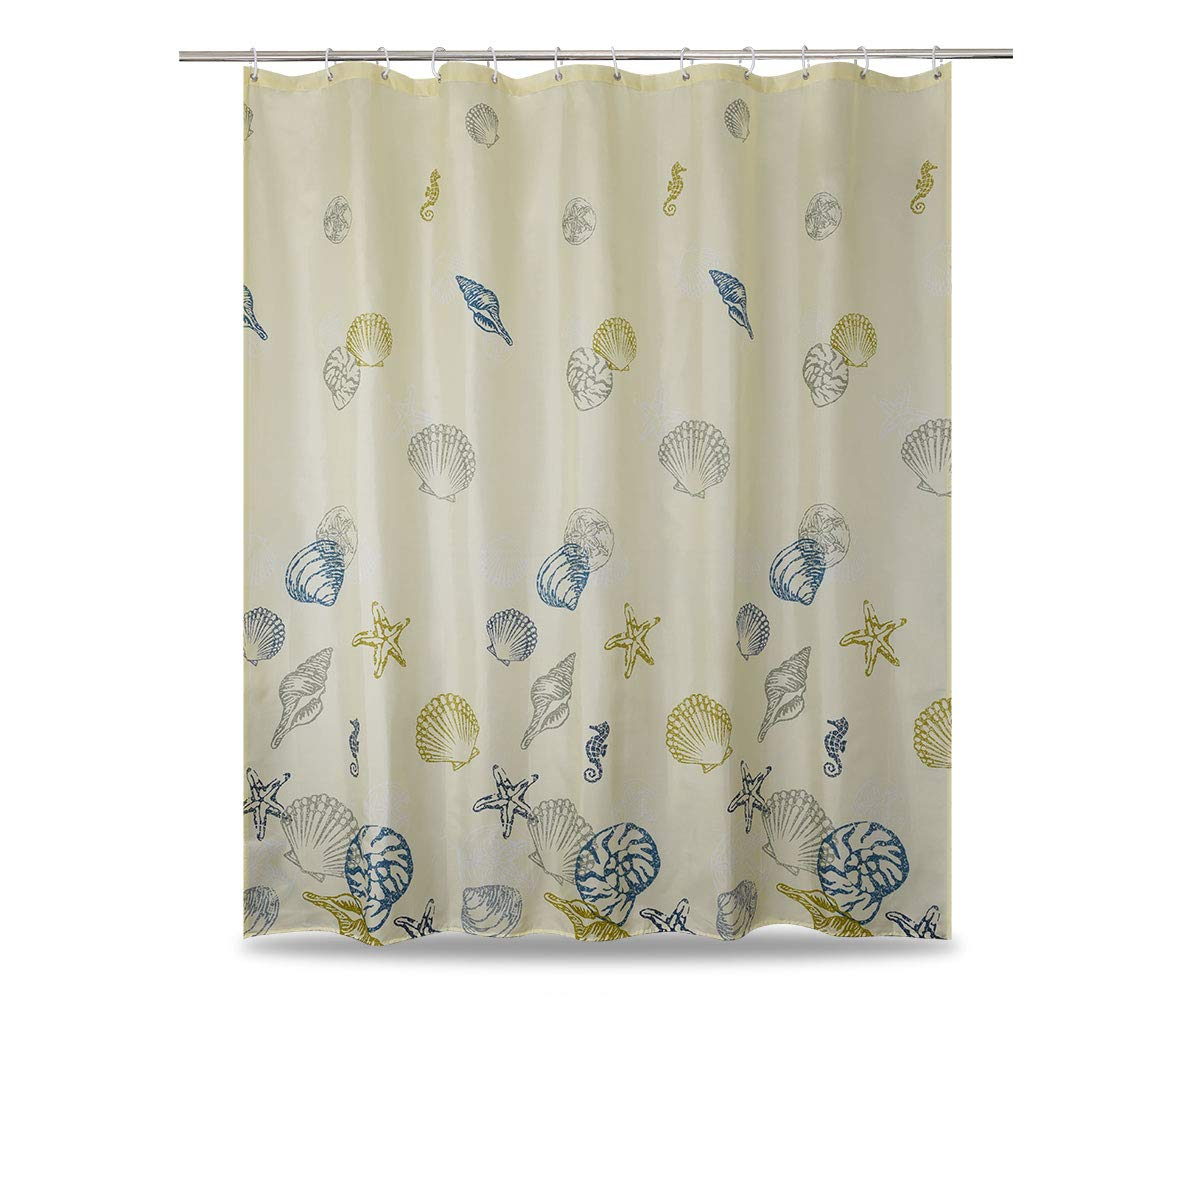 WUFAY Black Fabric Shower Curtain 2018 New White And Abstract Set For Home